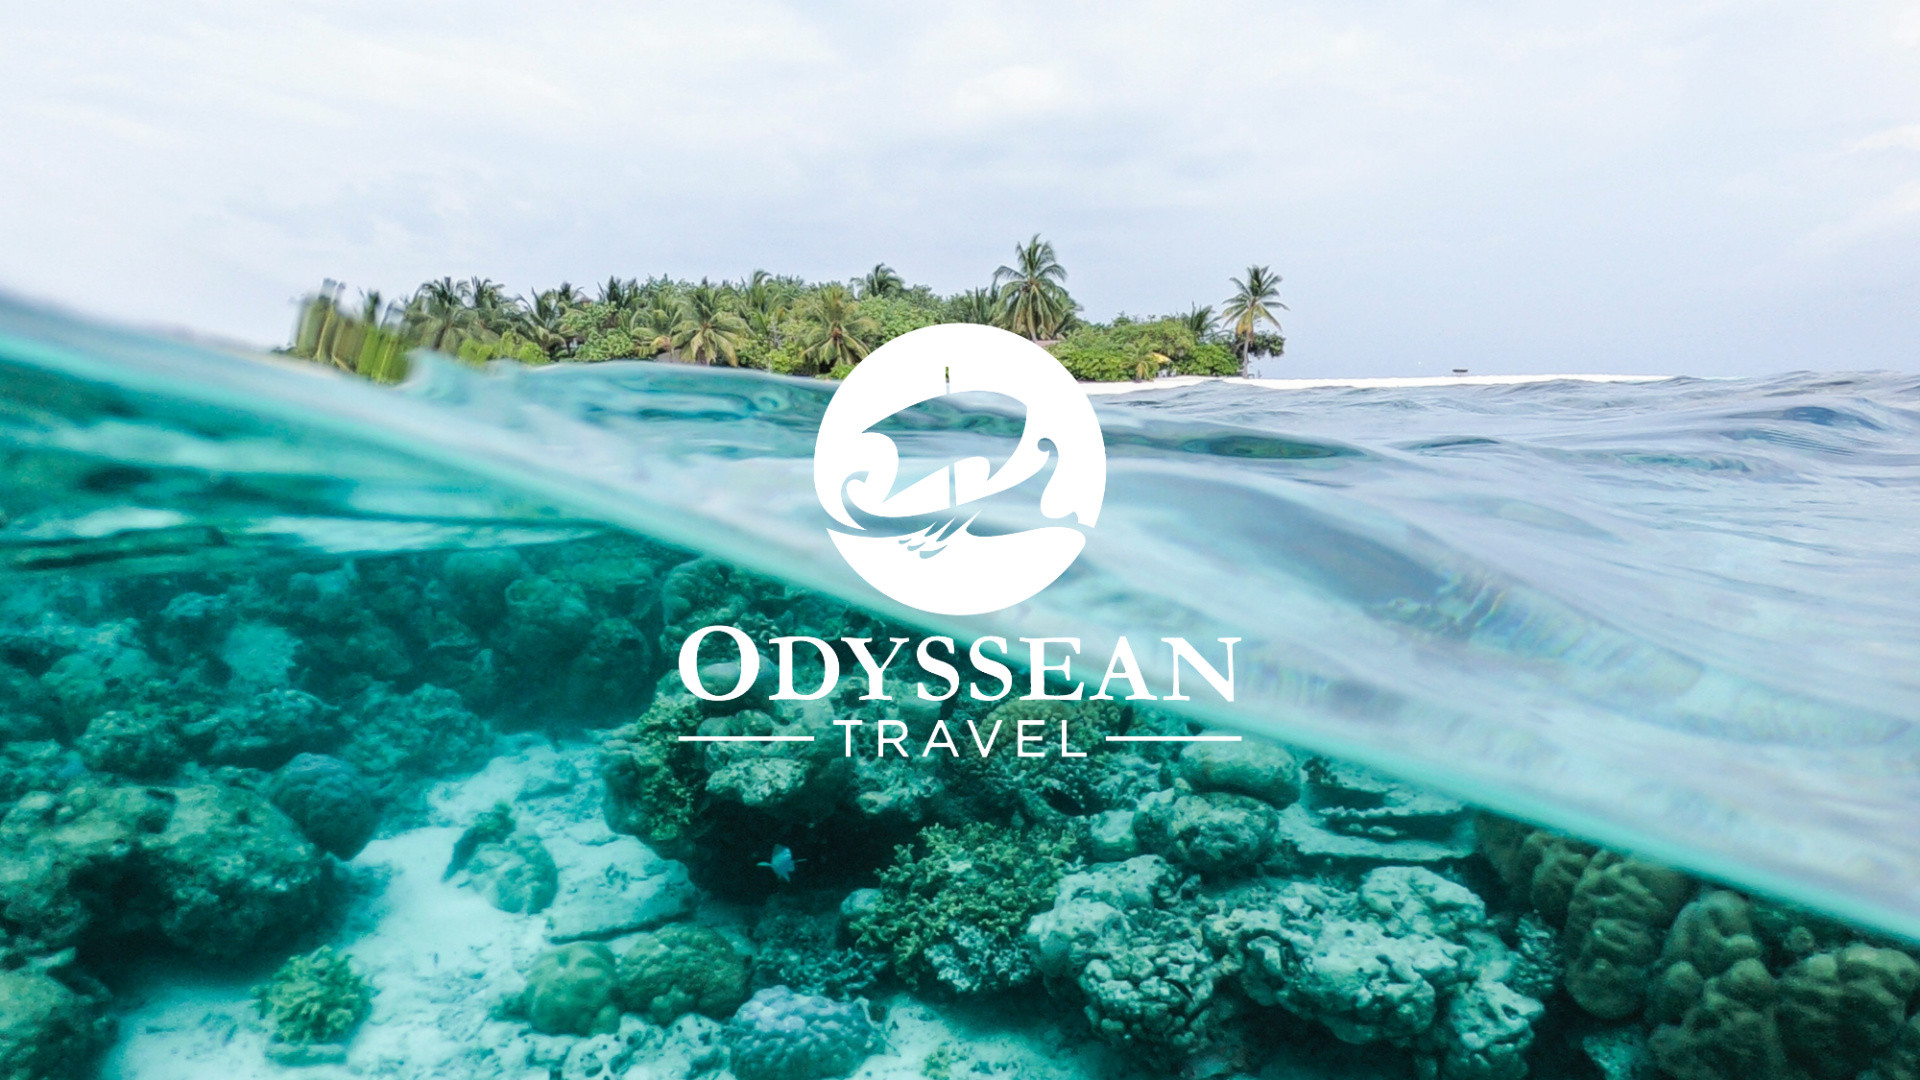 Plan a trip with us | Expert travel advisors | Odyssean Travel